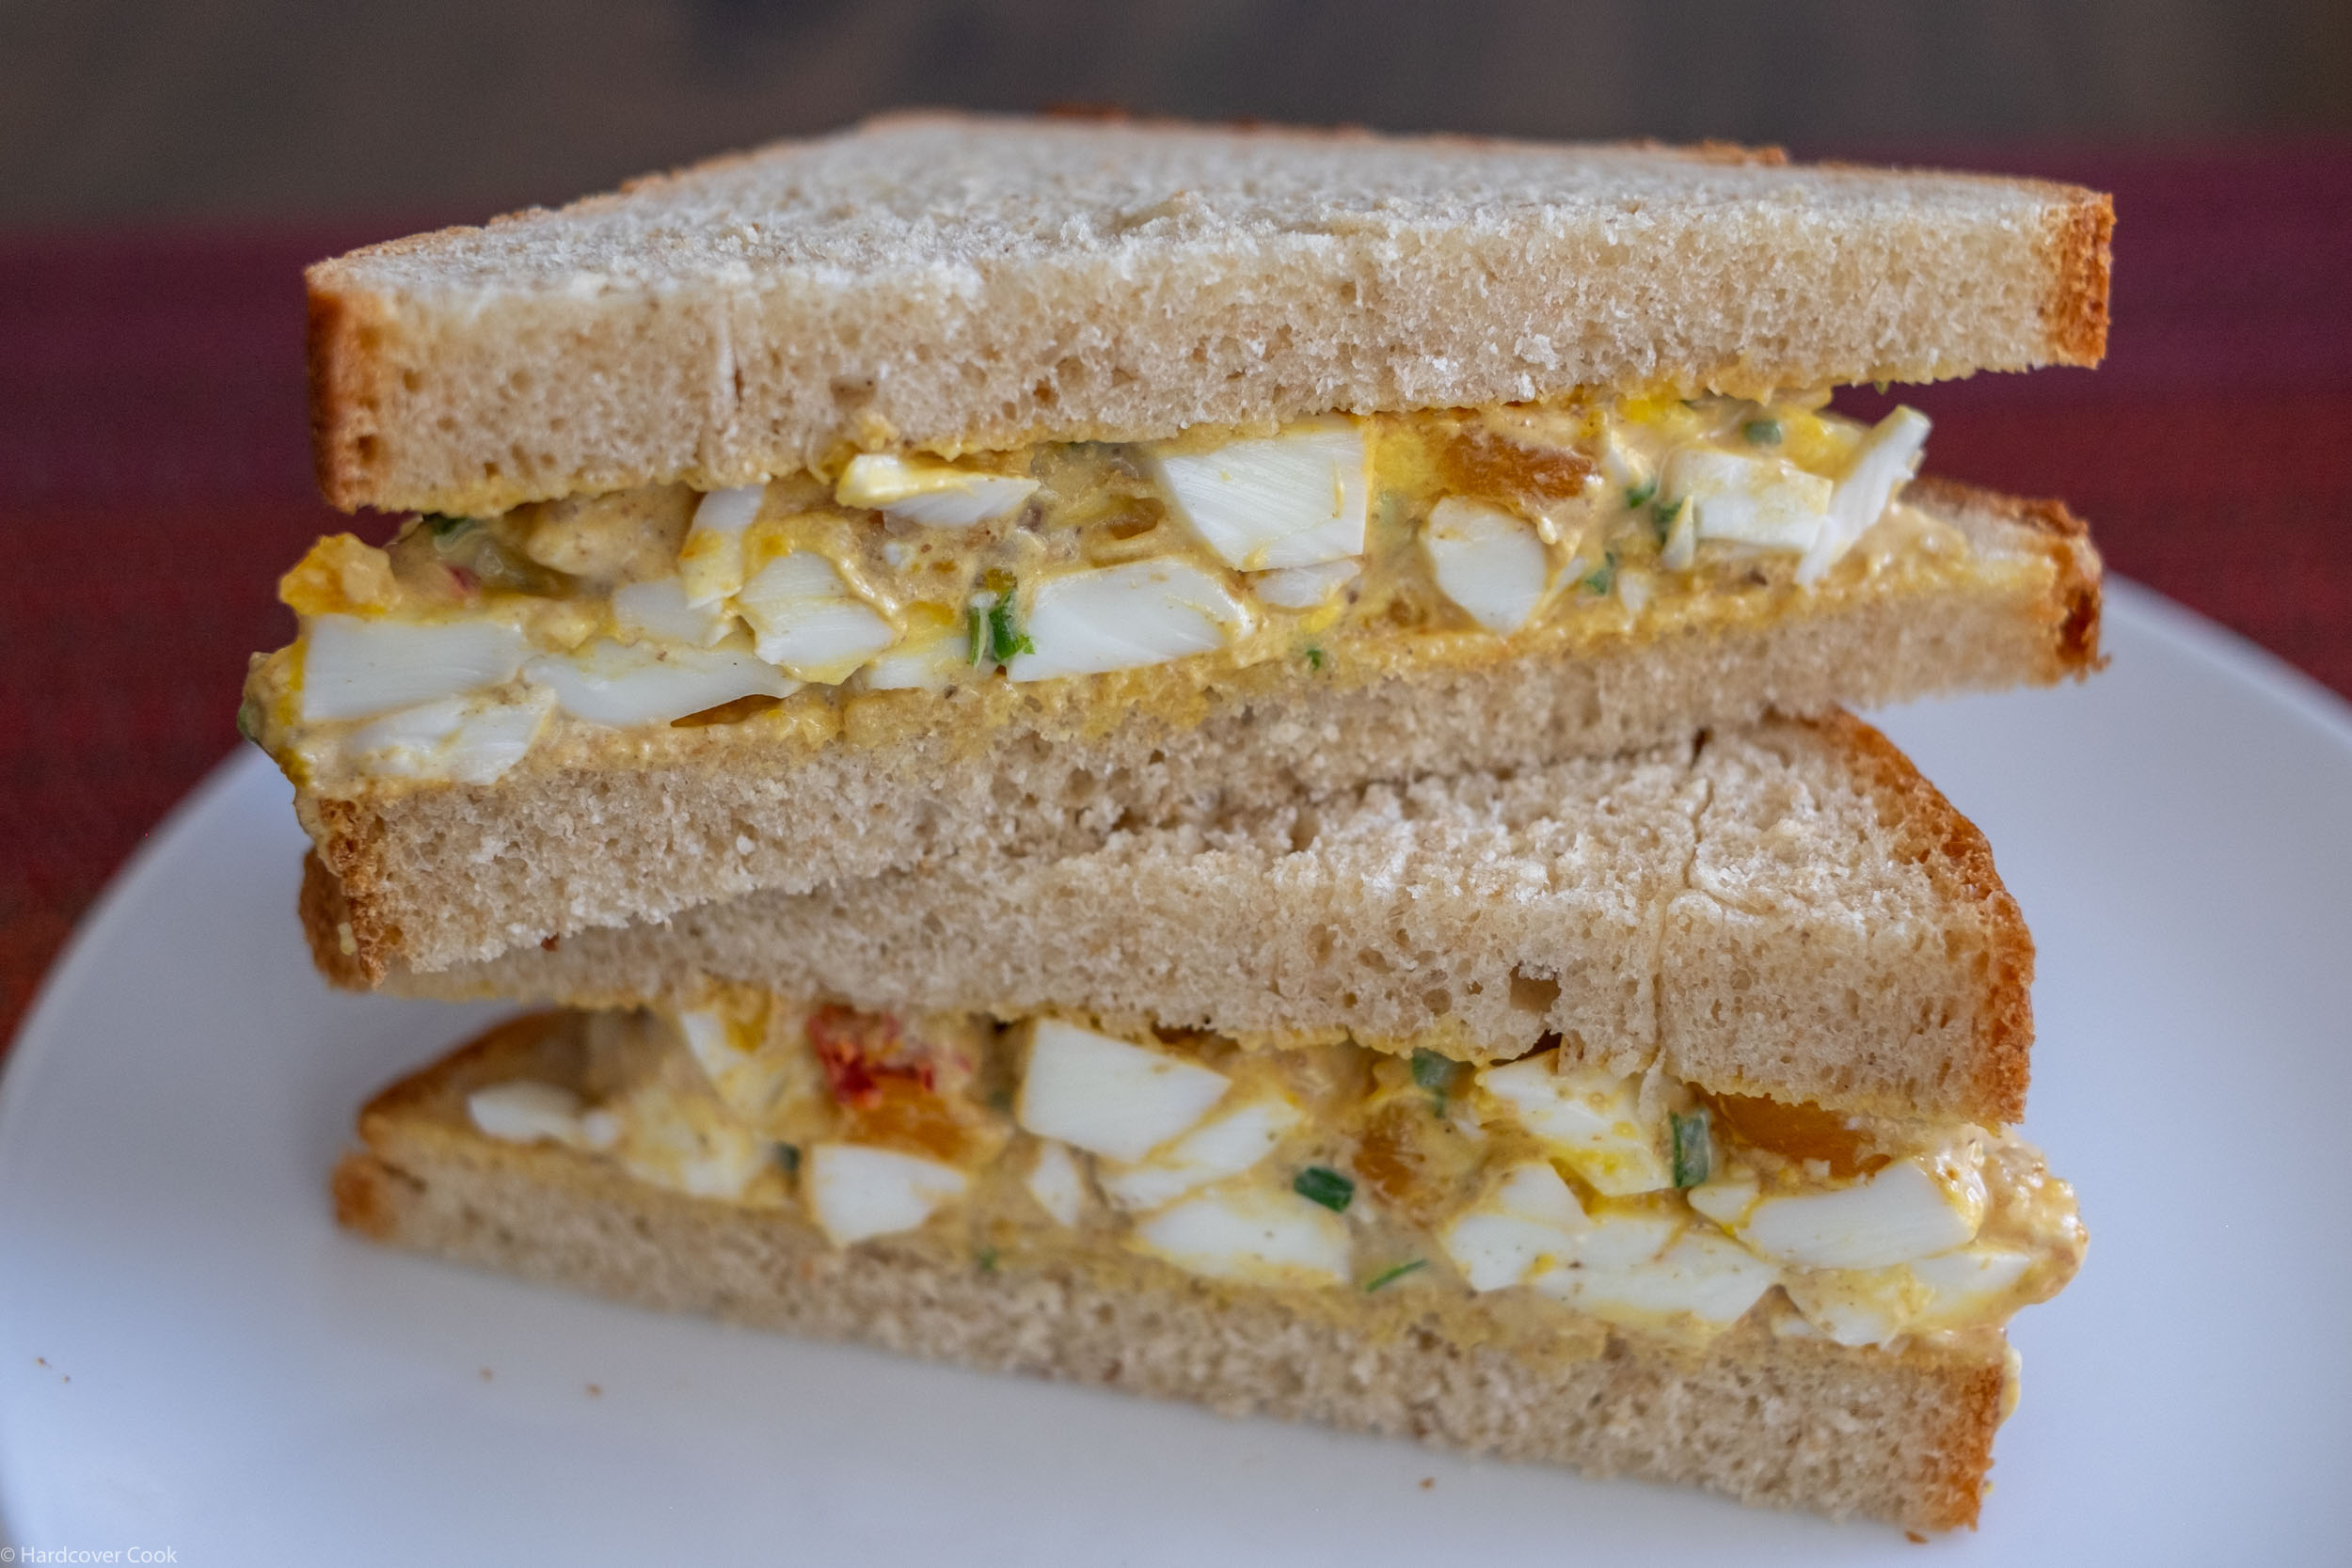 Egg Salad with Toasted Coriander from Season